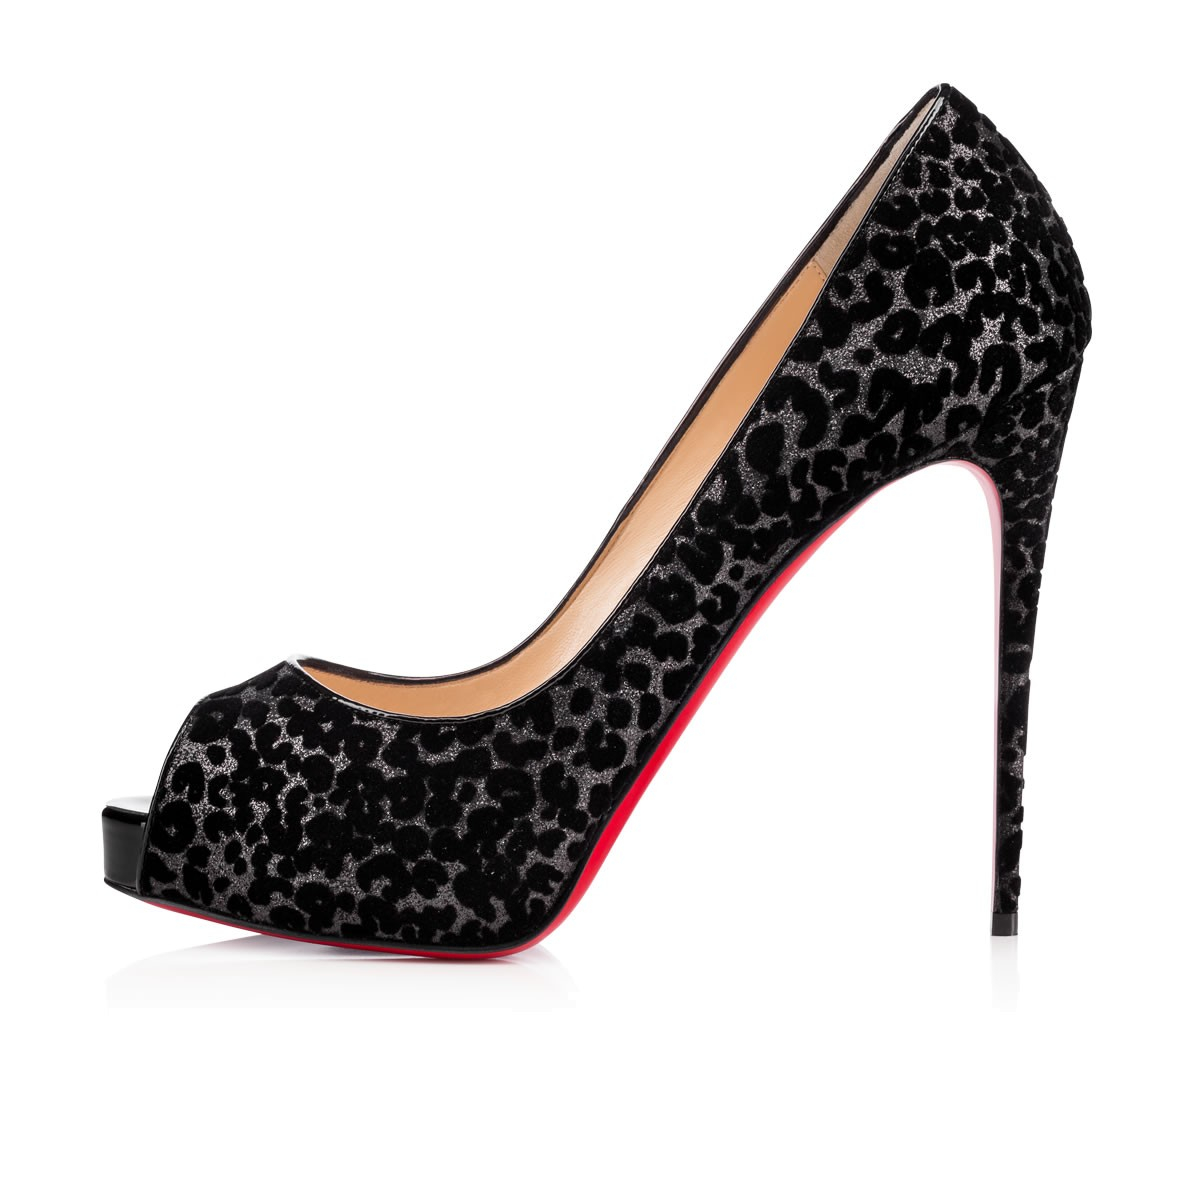 mens christian louboutin loafers - Christian louboutin New Very Prive Glitter Leo Floque/patent in ...